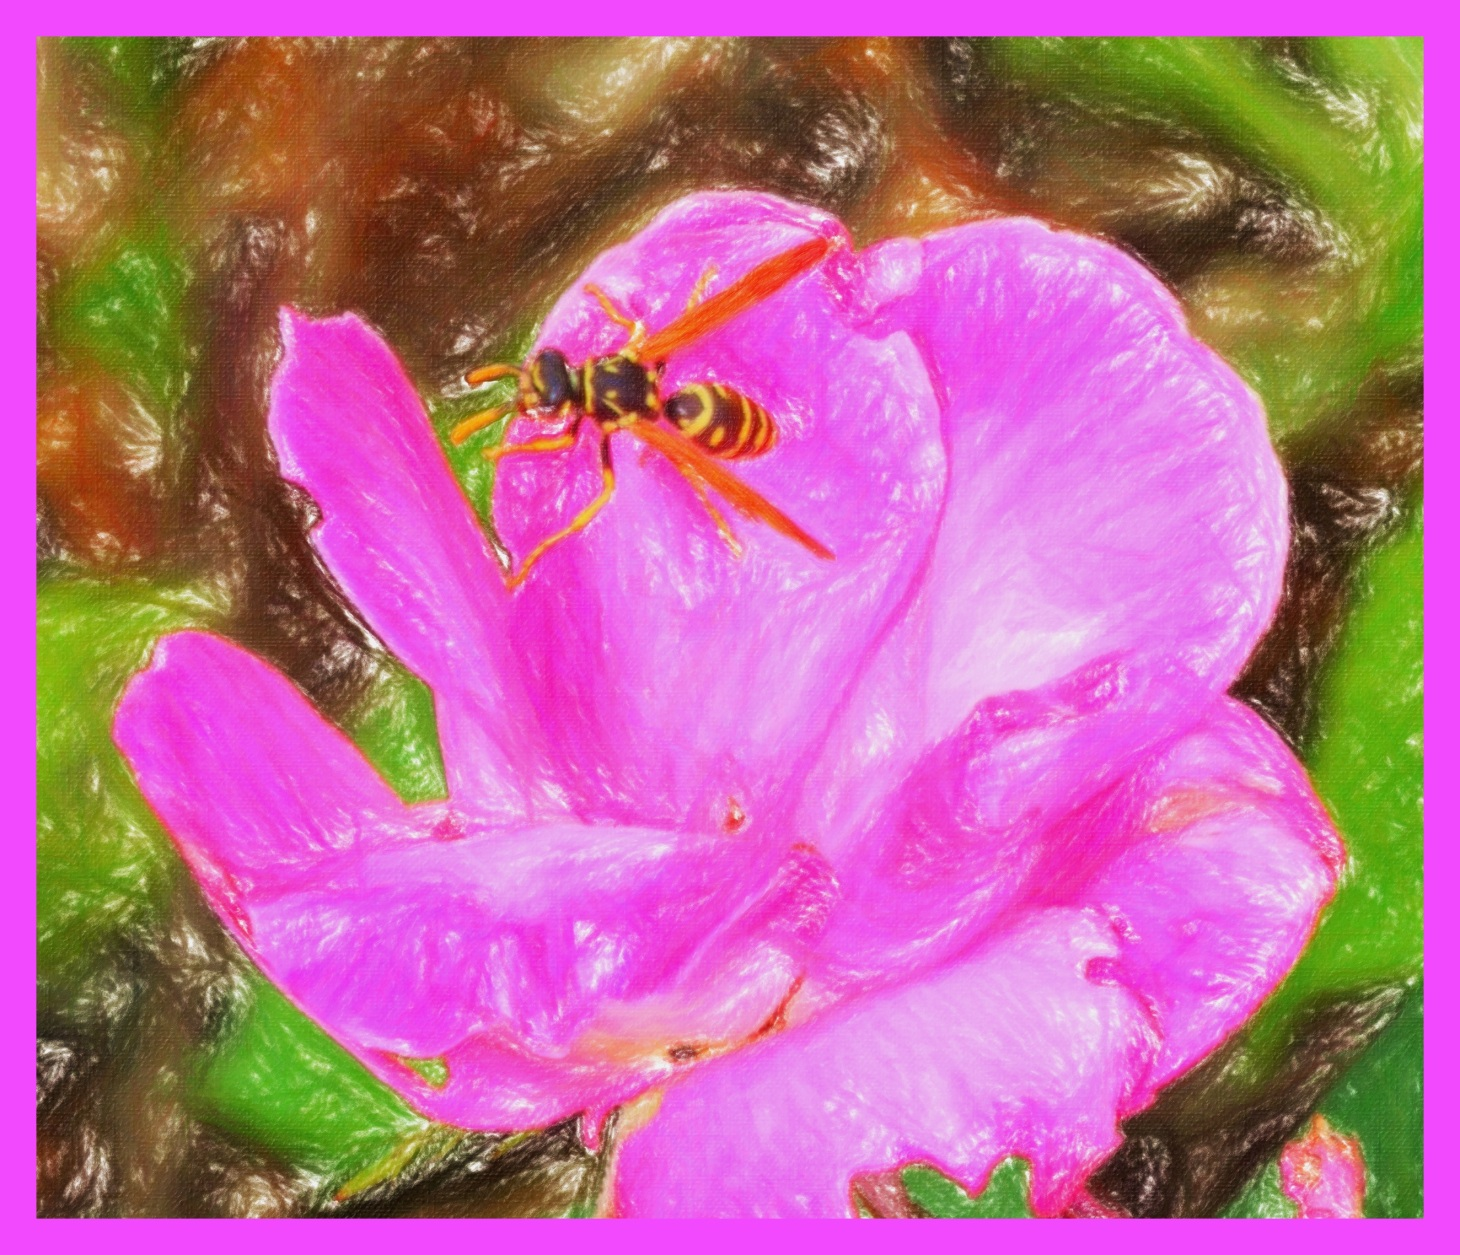 Wasp in Flower. (2) Photo by Thomas Peace c. 2015